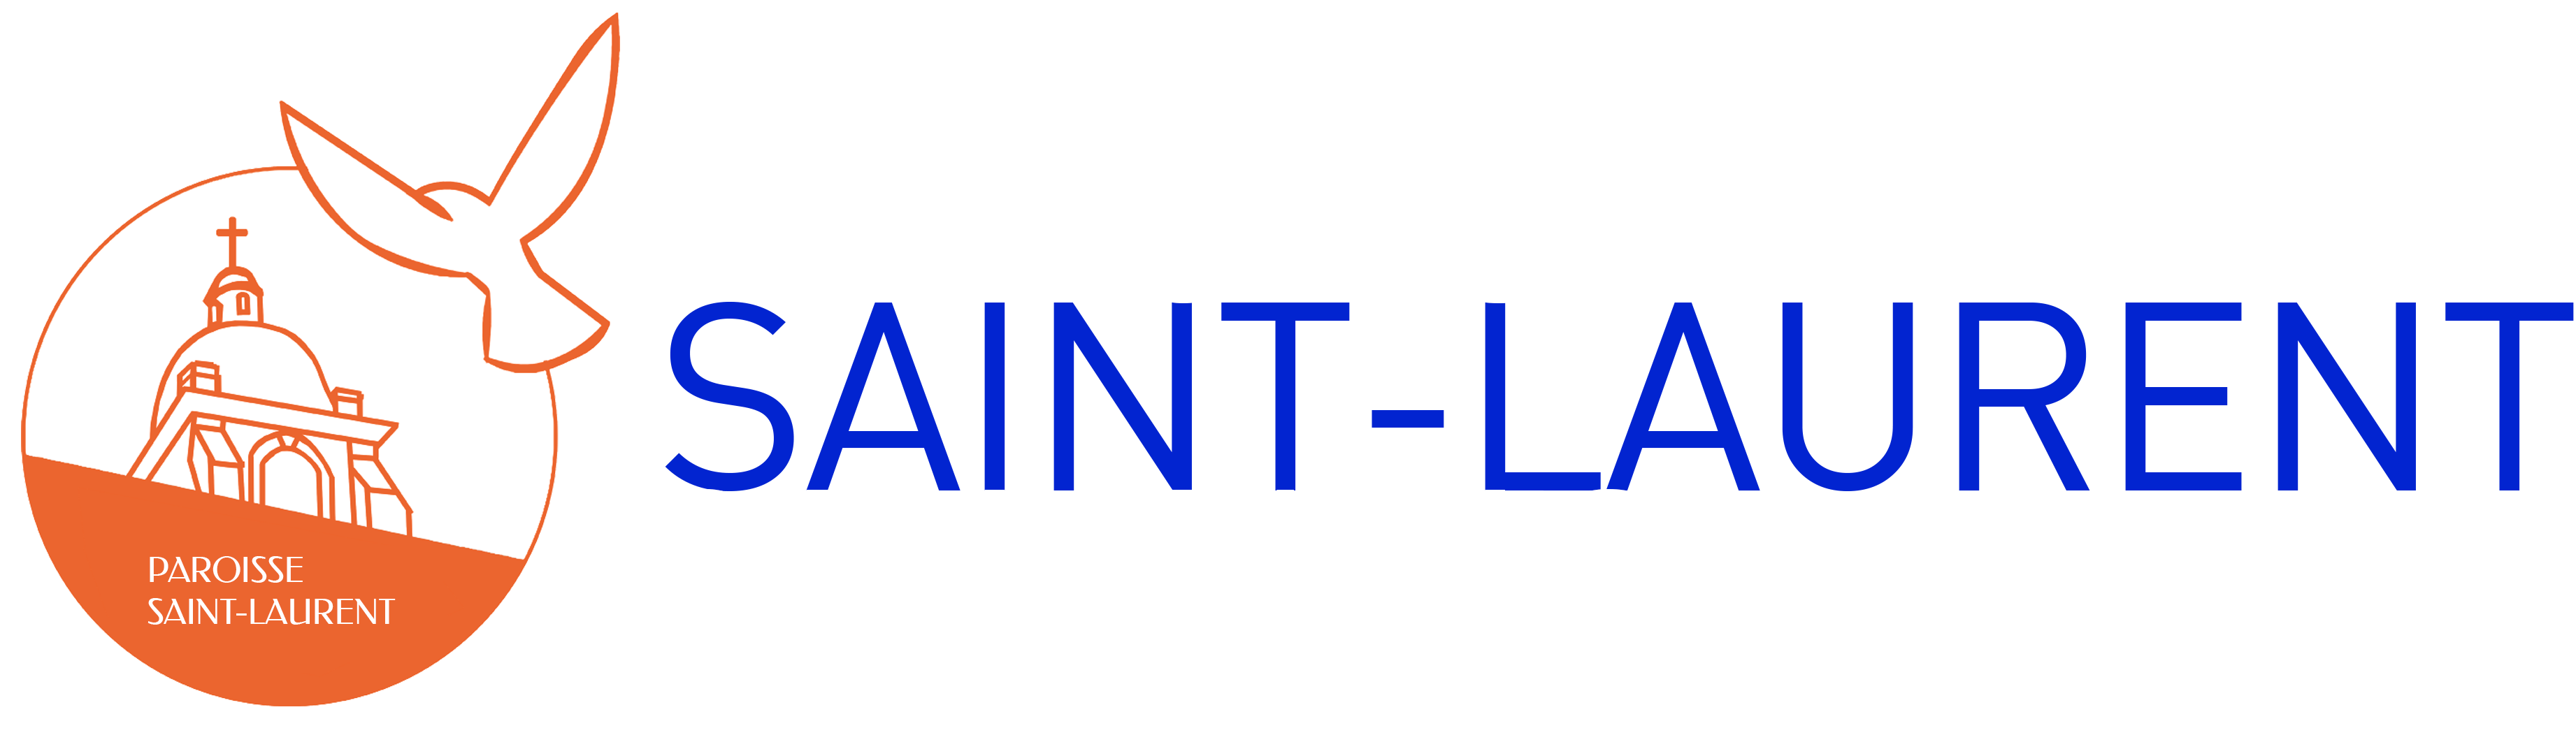 La Paroisse Saint Laurent